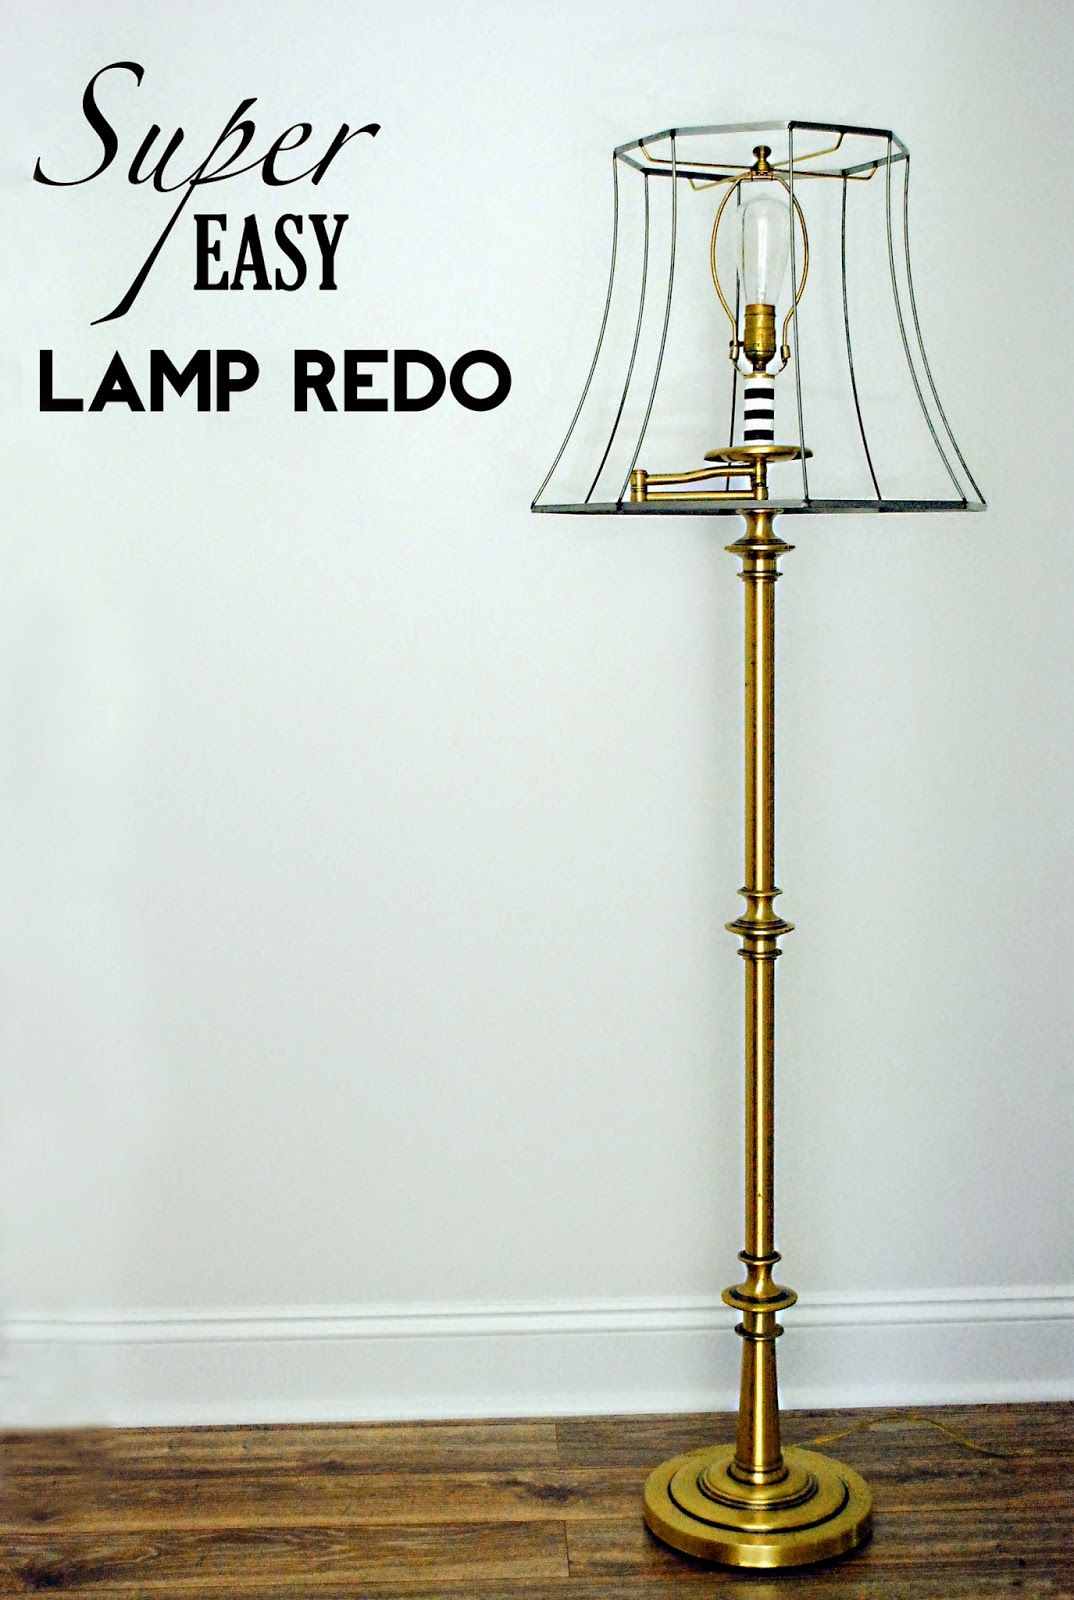 Life As A Thrifter Super Easy Lamp Redo Lamp Redo Lamp